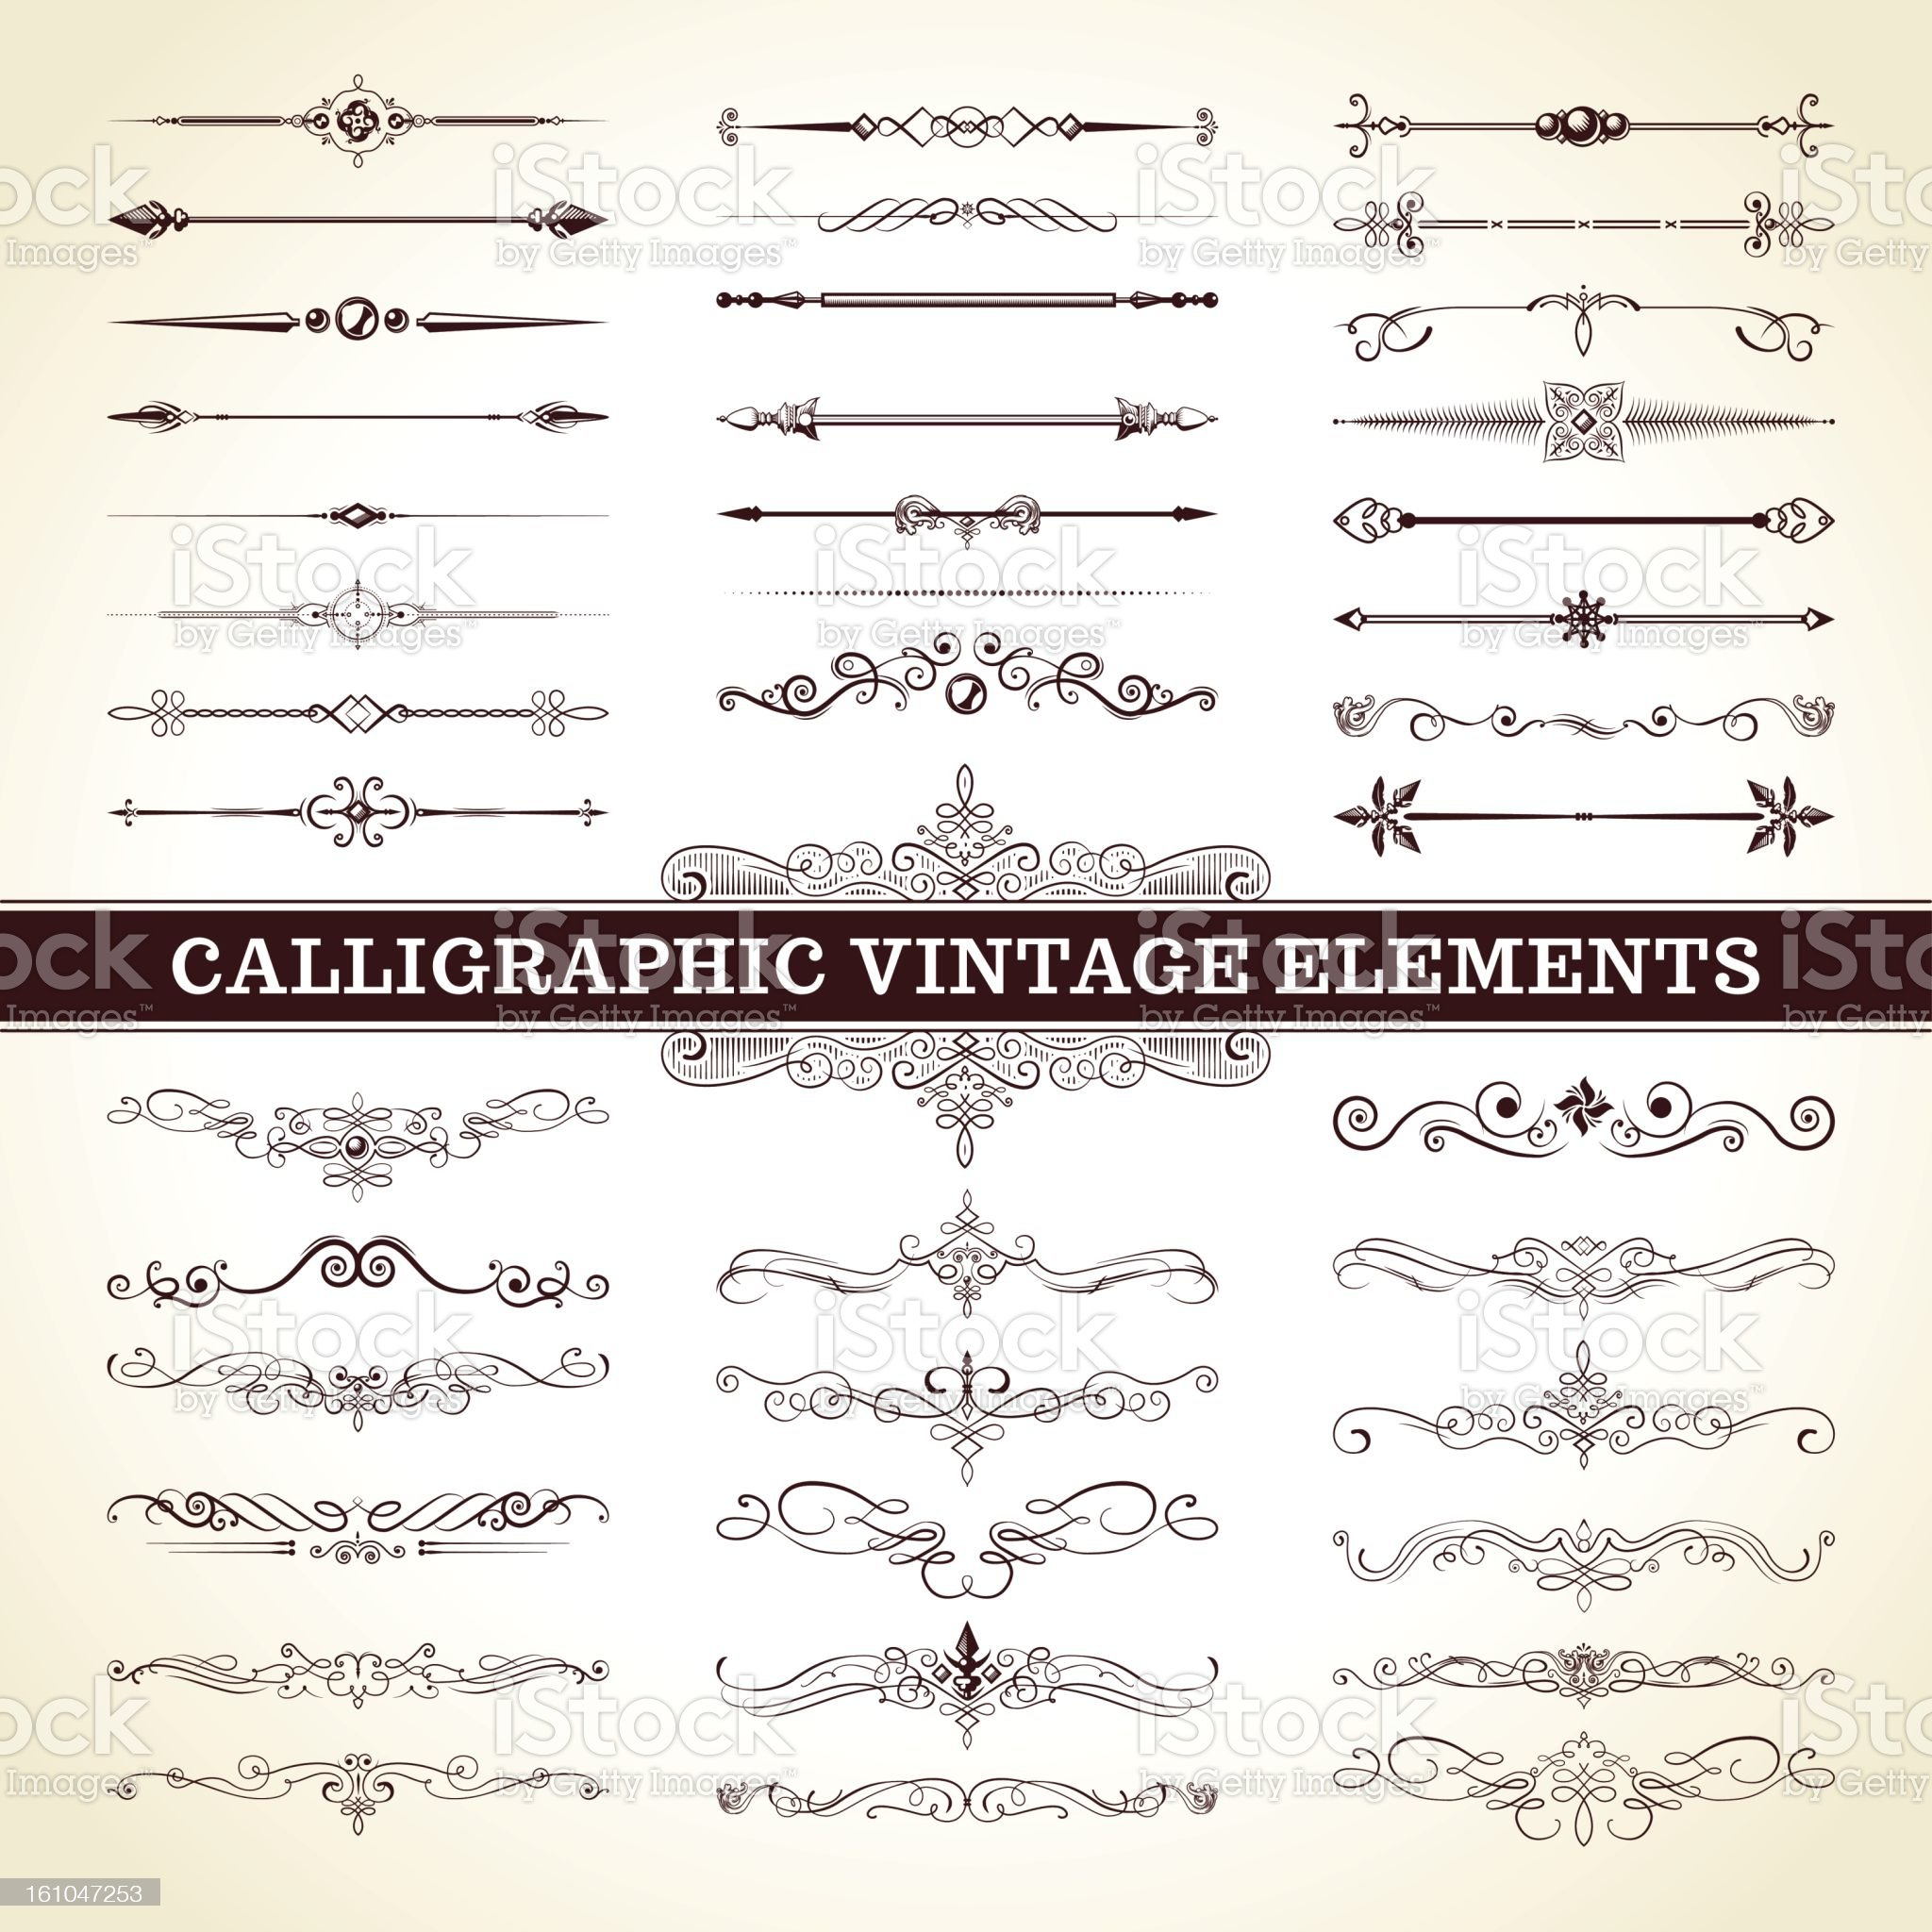 Calligraphic Vintage Elements royalty-free stock photo